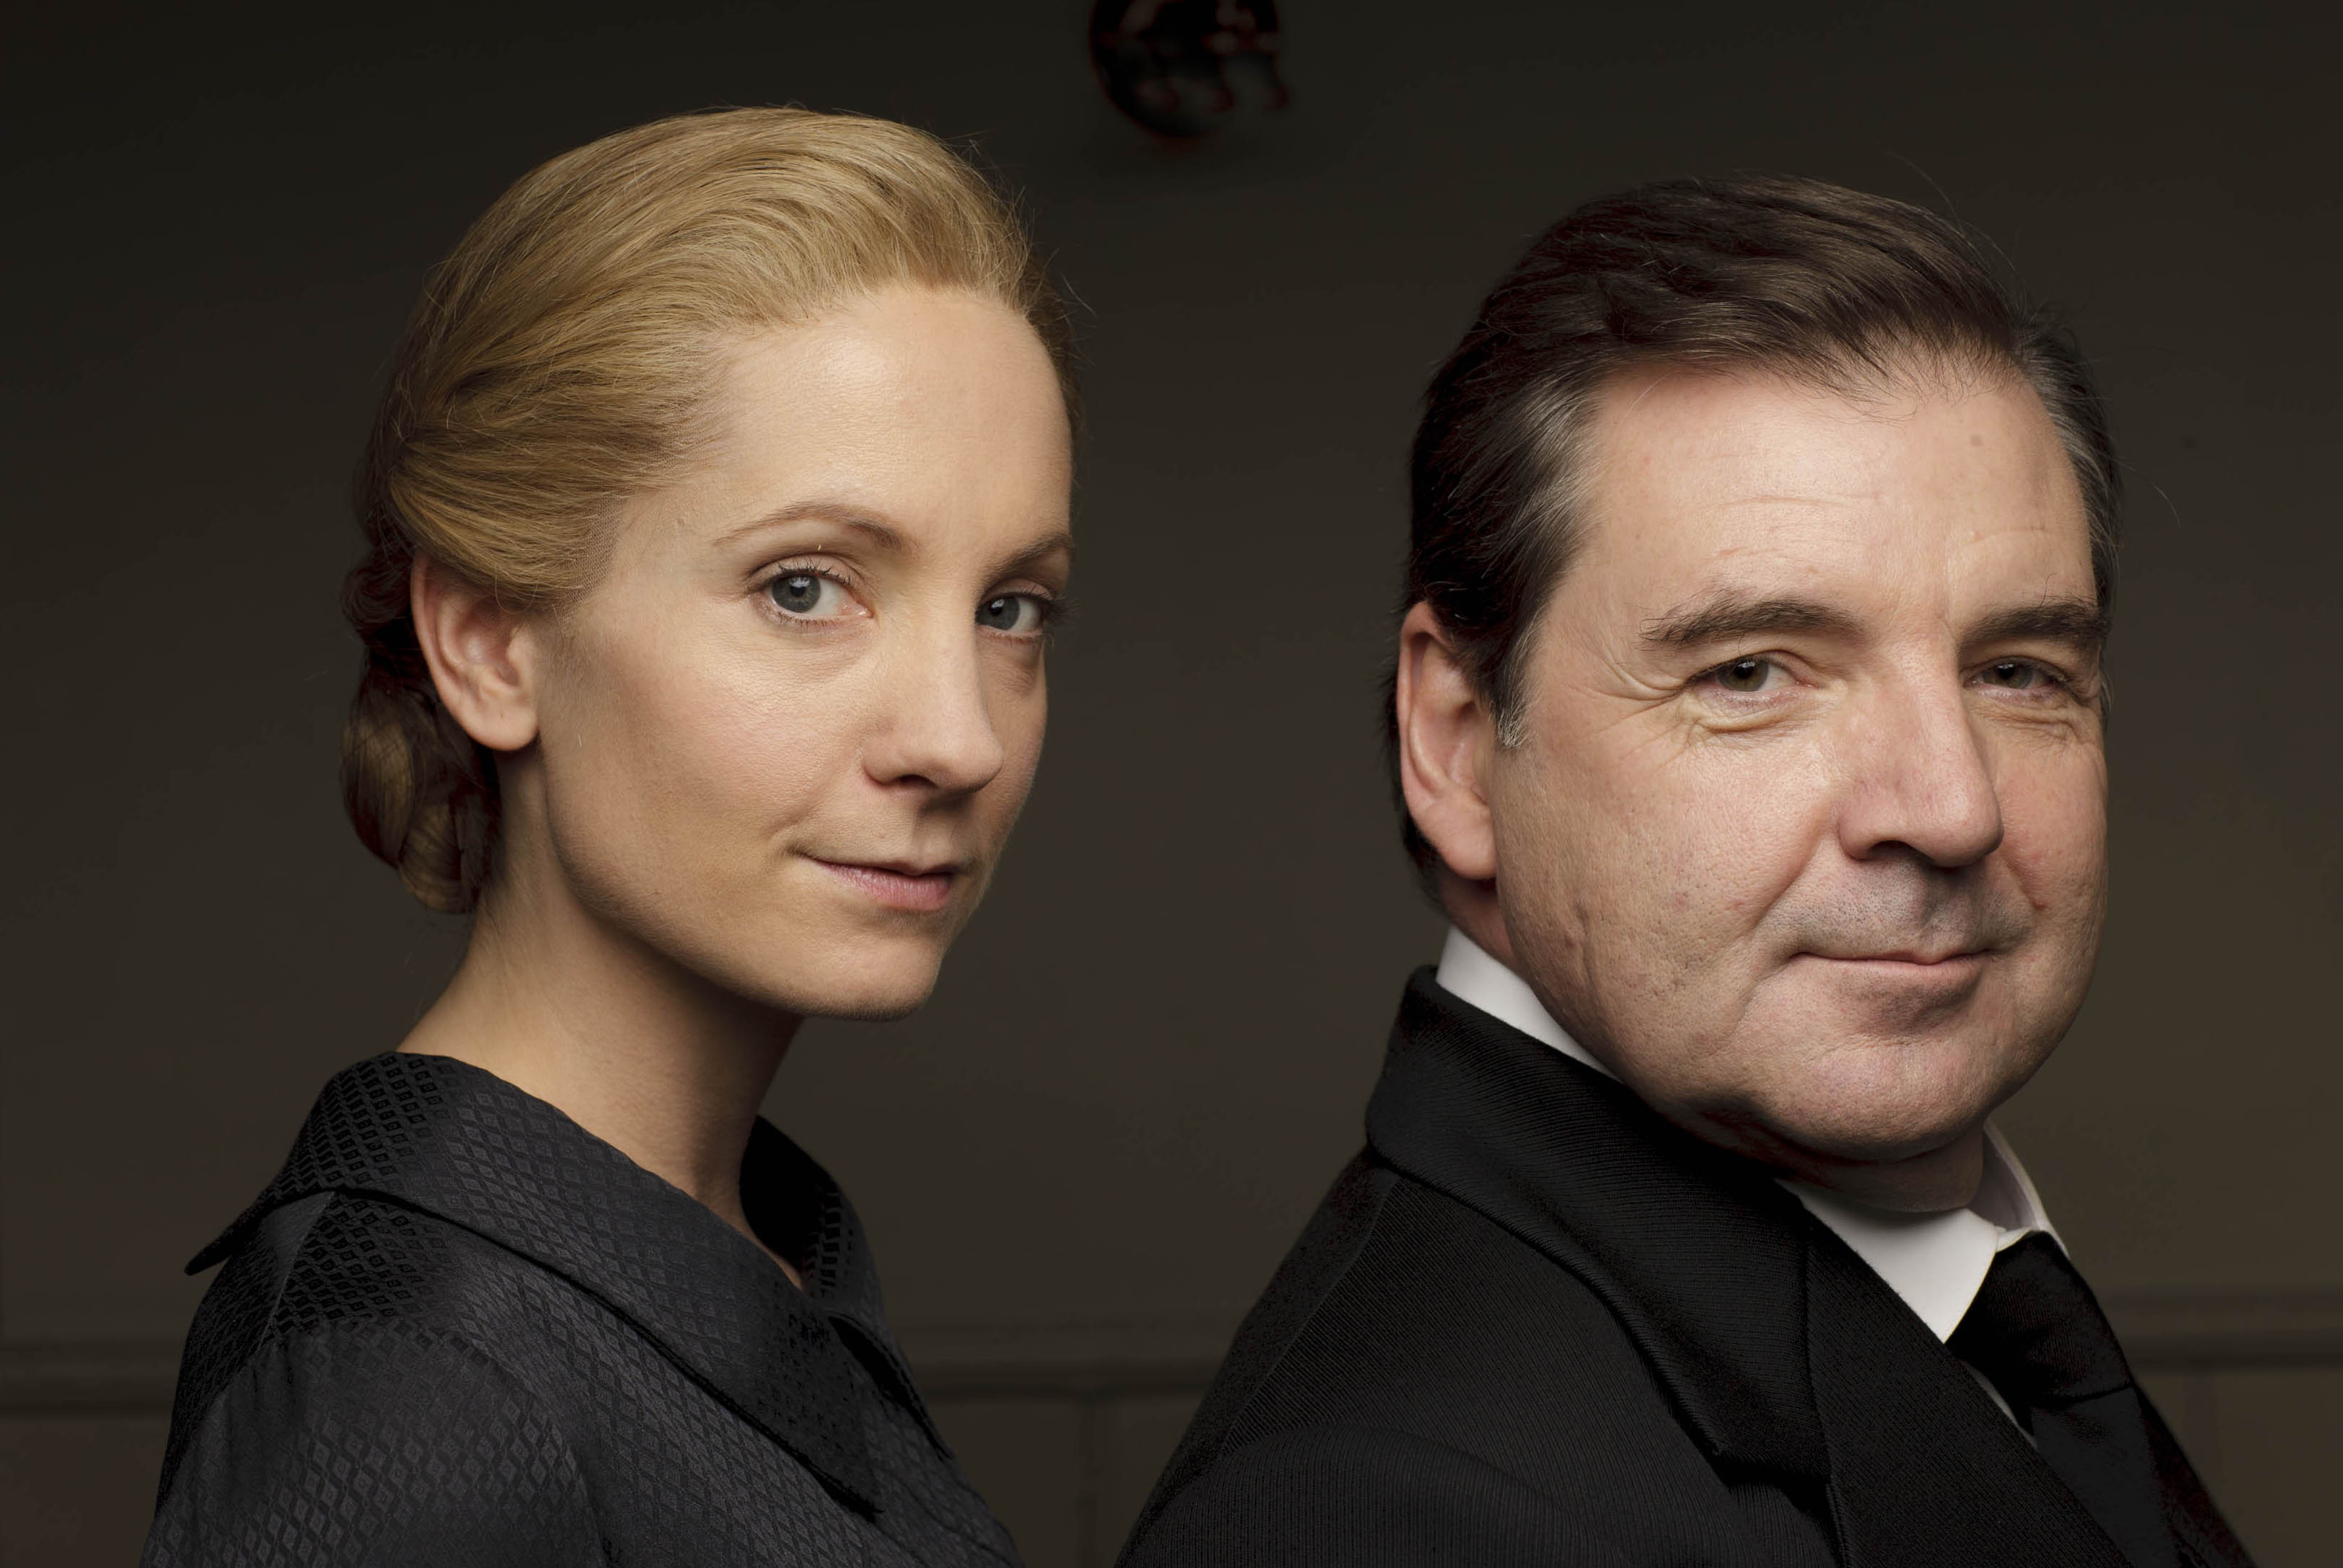 Downton Abbey debuted to lowest ever season opener ratings